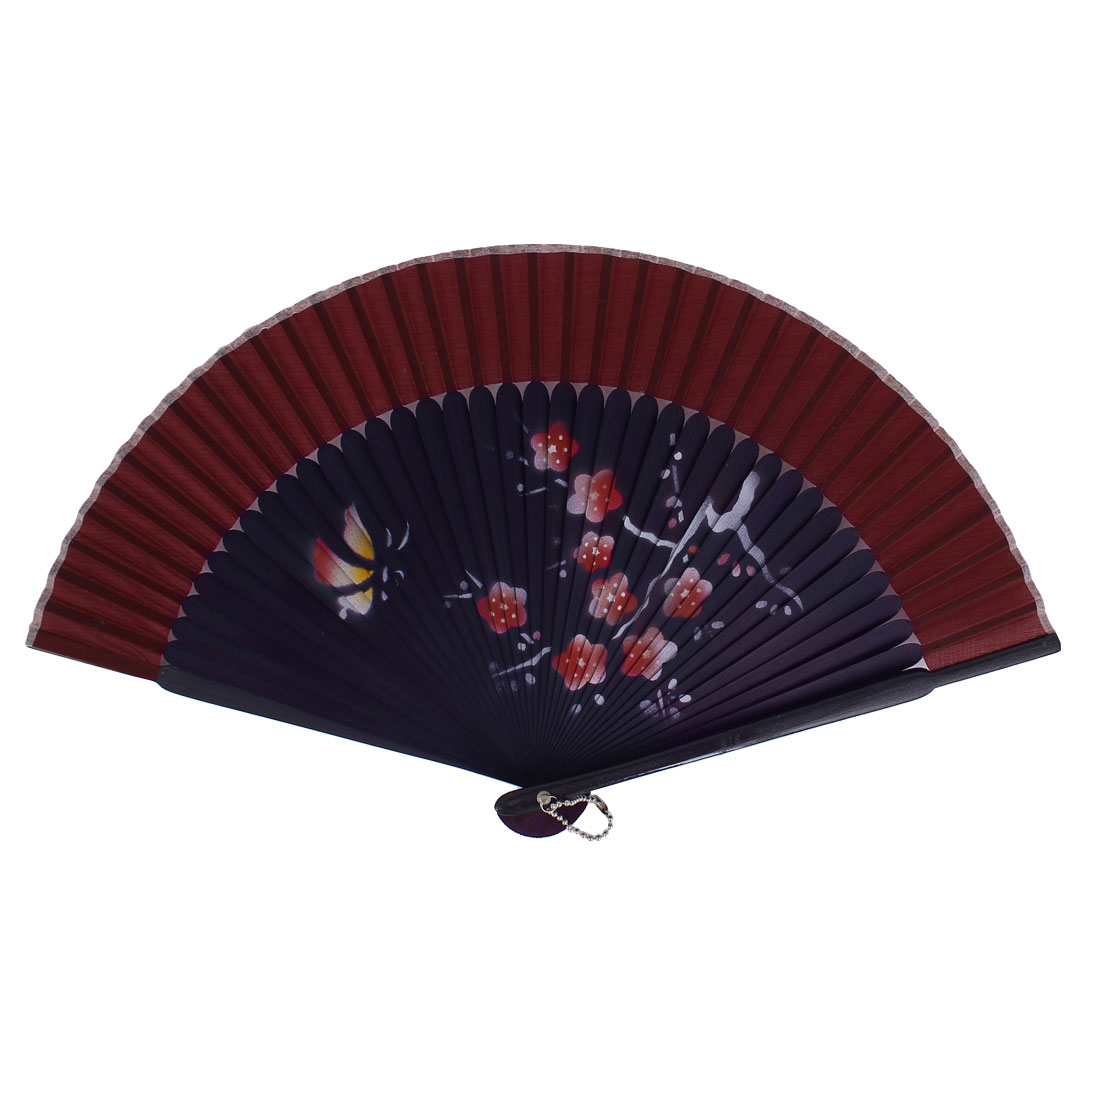 Chinese Style Flower Print Wood Handheld Folding Hand Fan Burgundy Eggplant Color